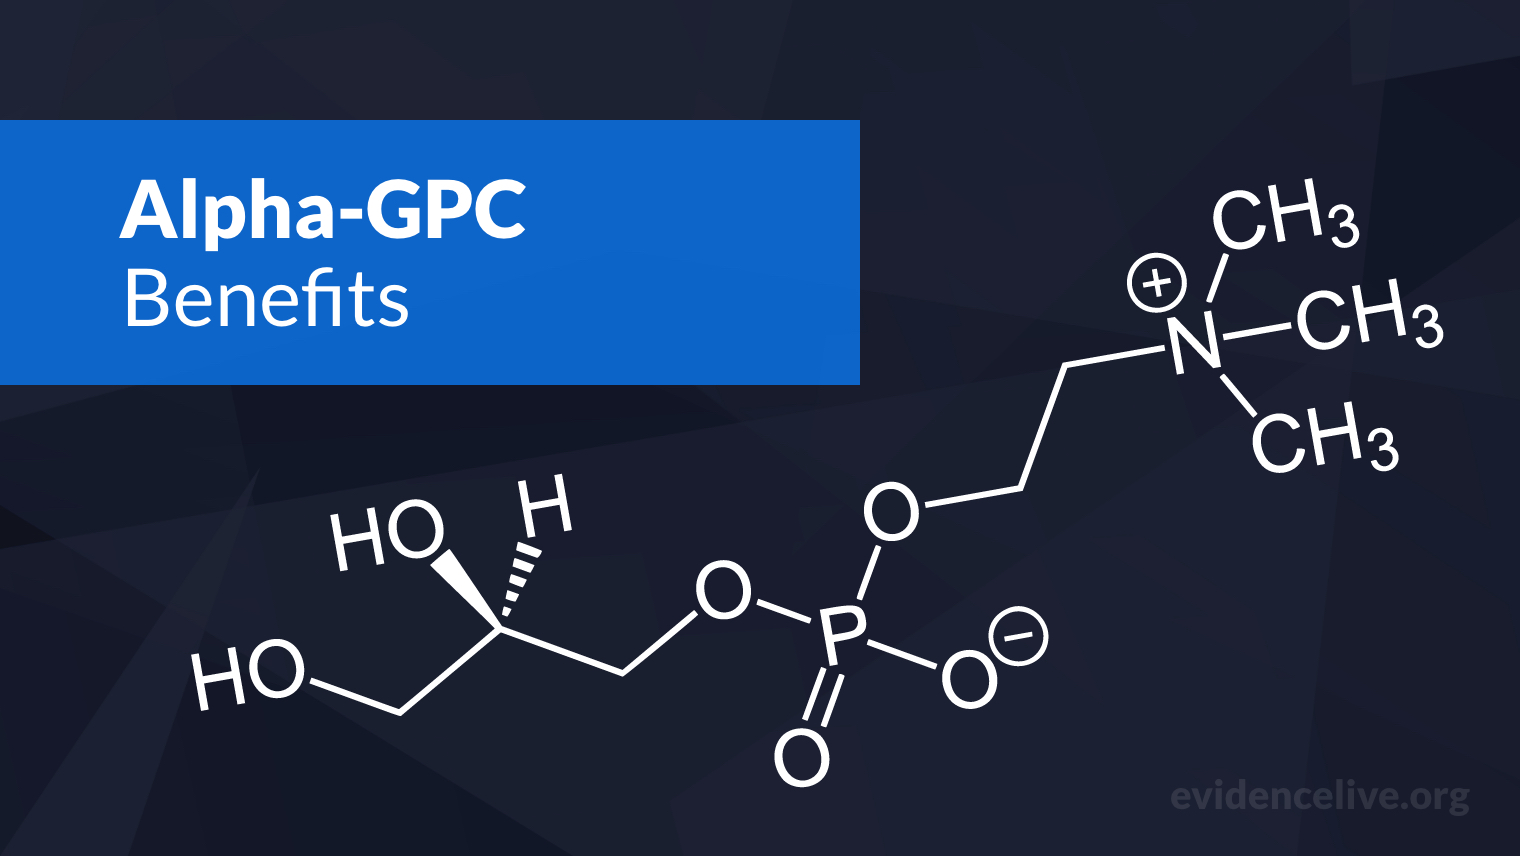 Alpha-GPC: Benefits, Uses, Dosage, and Side Effects